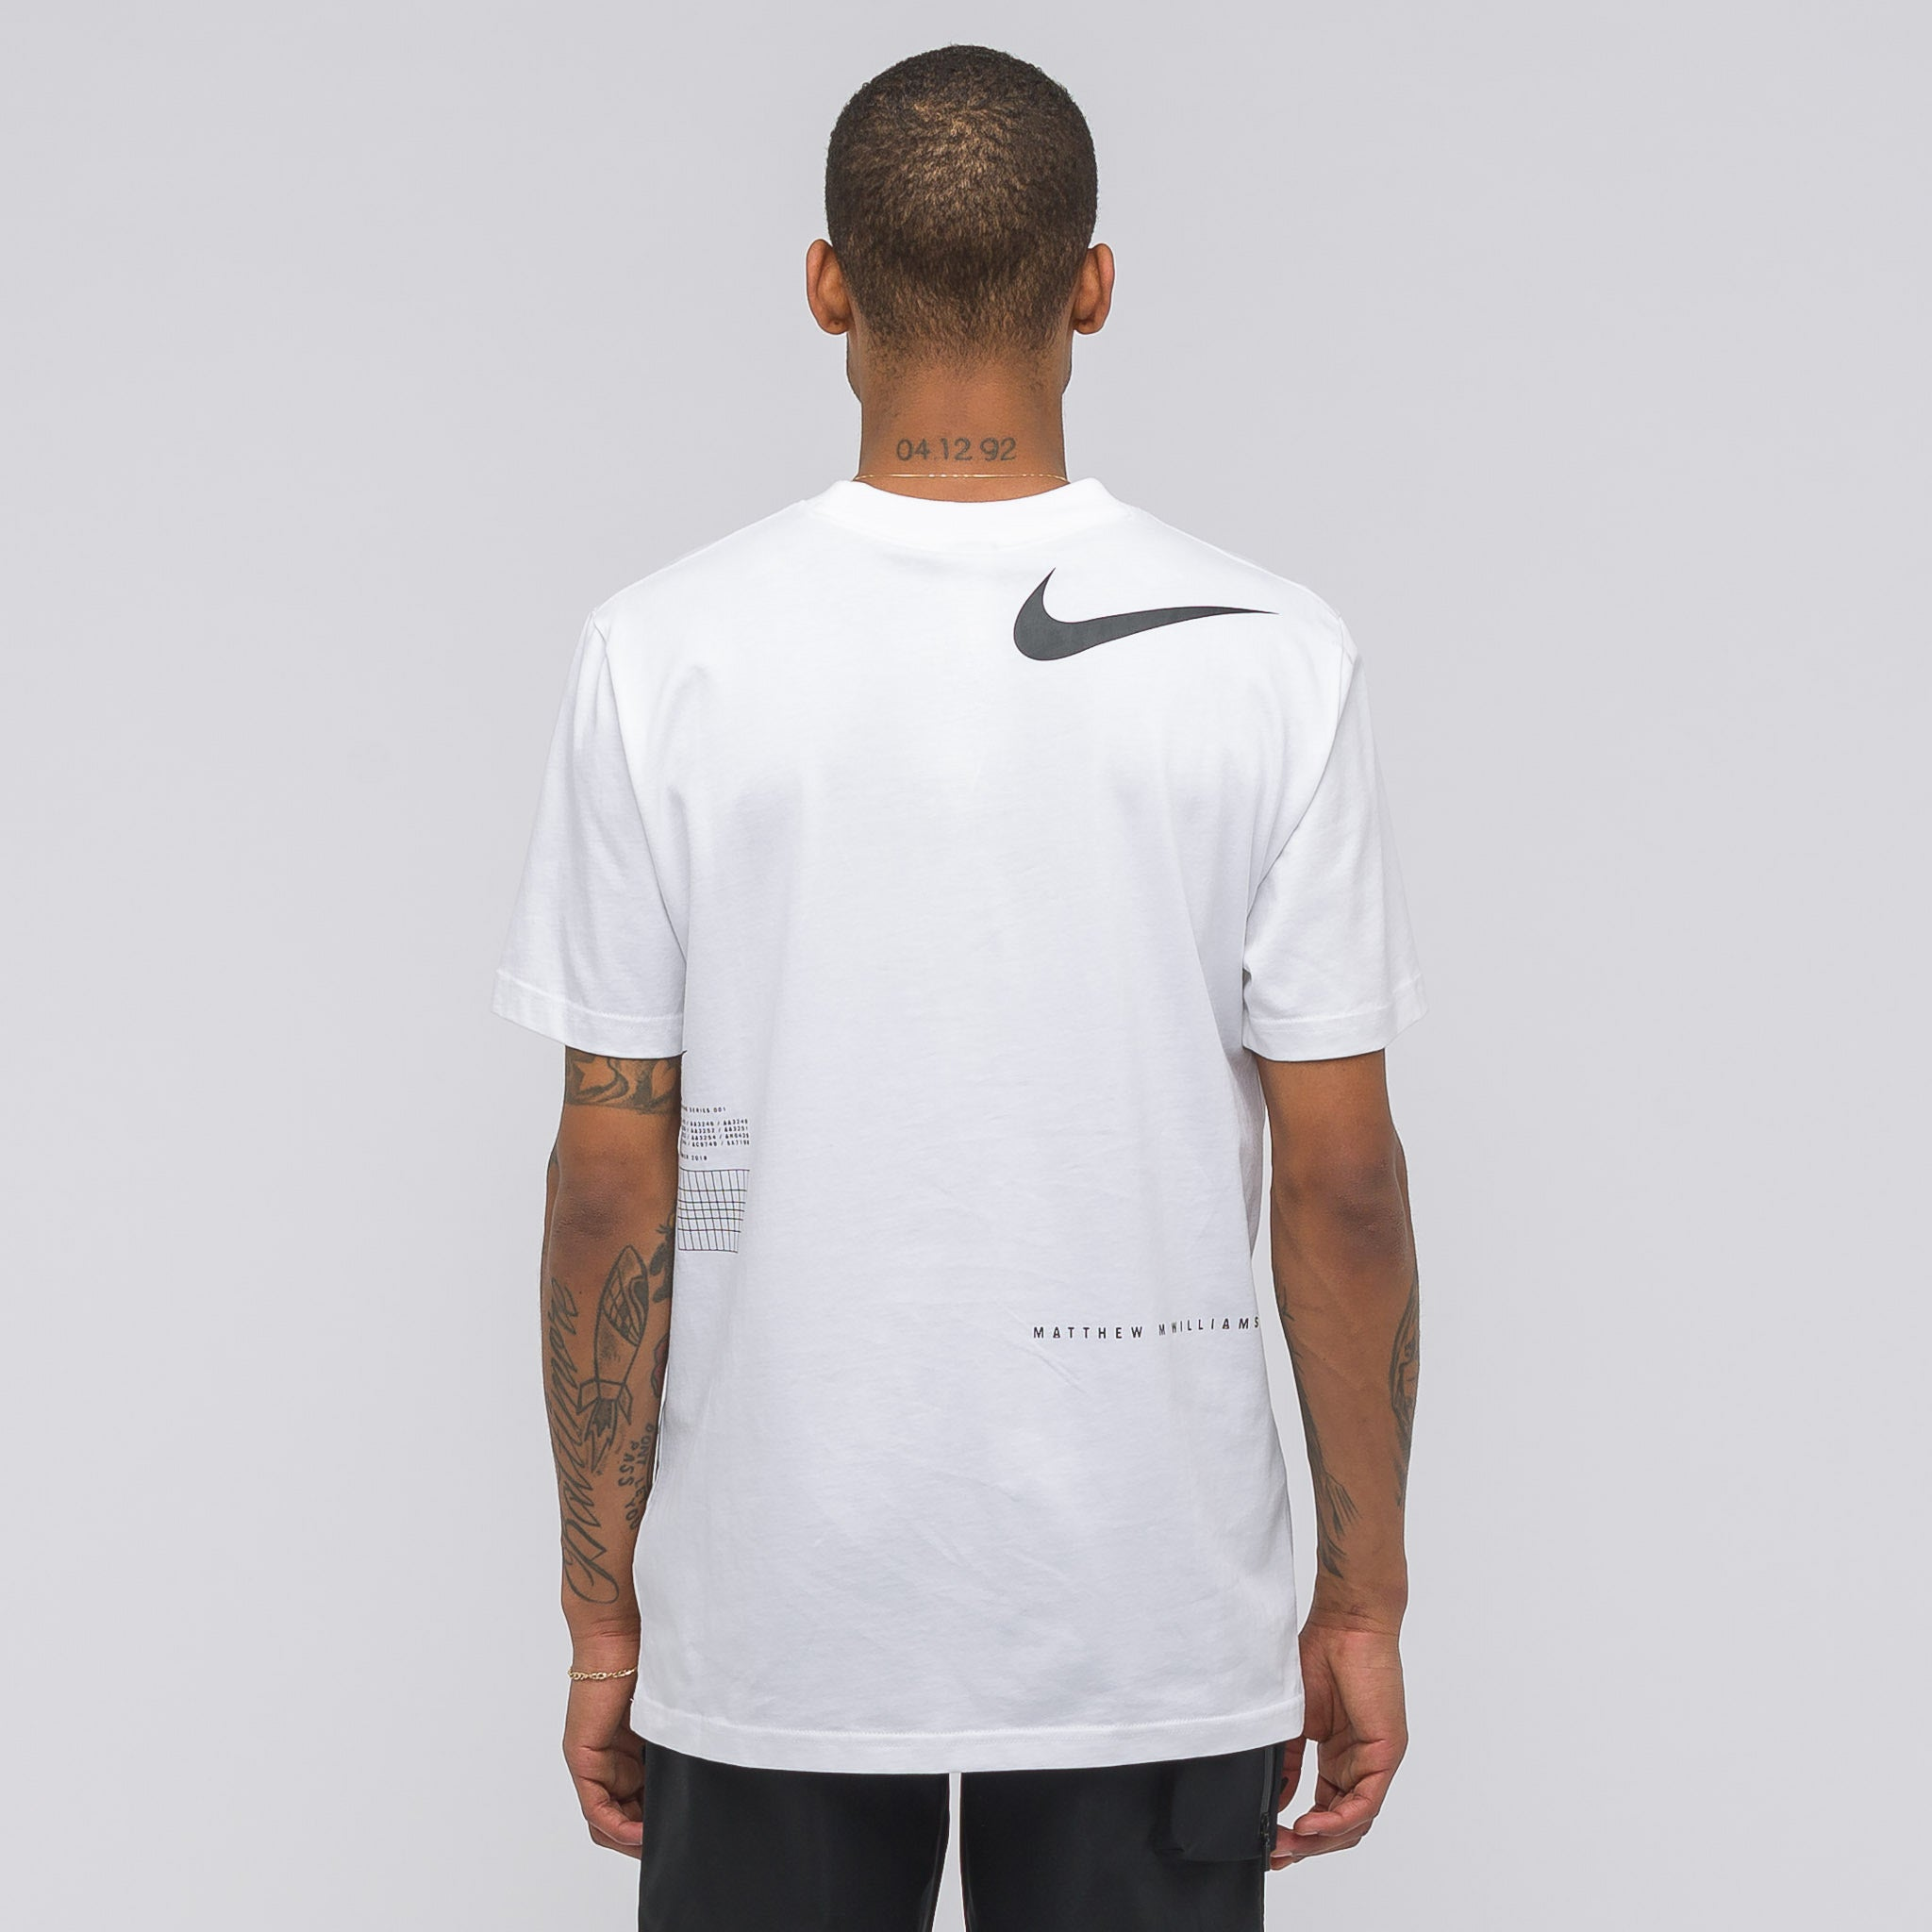 x Matthew Williams Beryllium T-Shirt in White